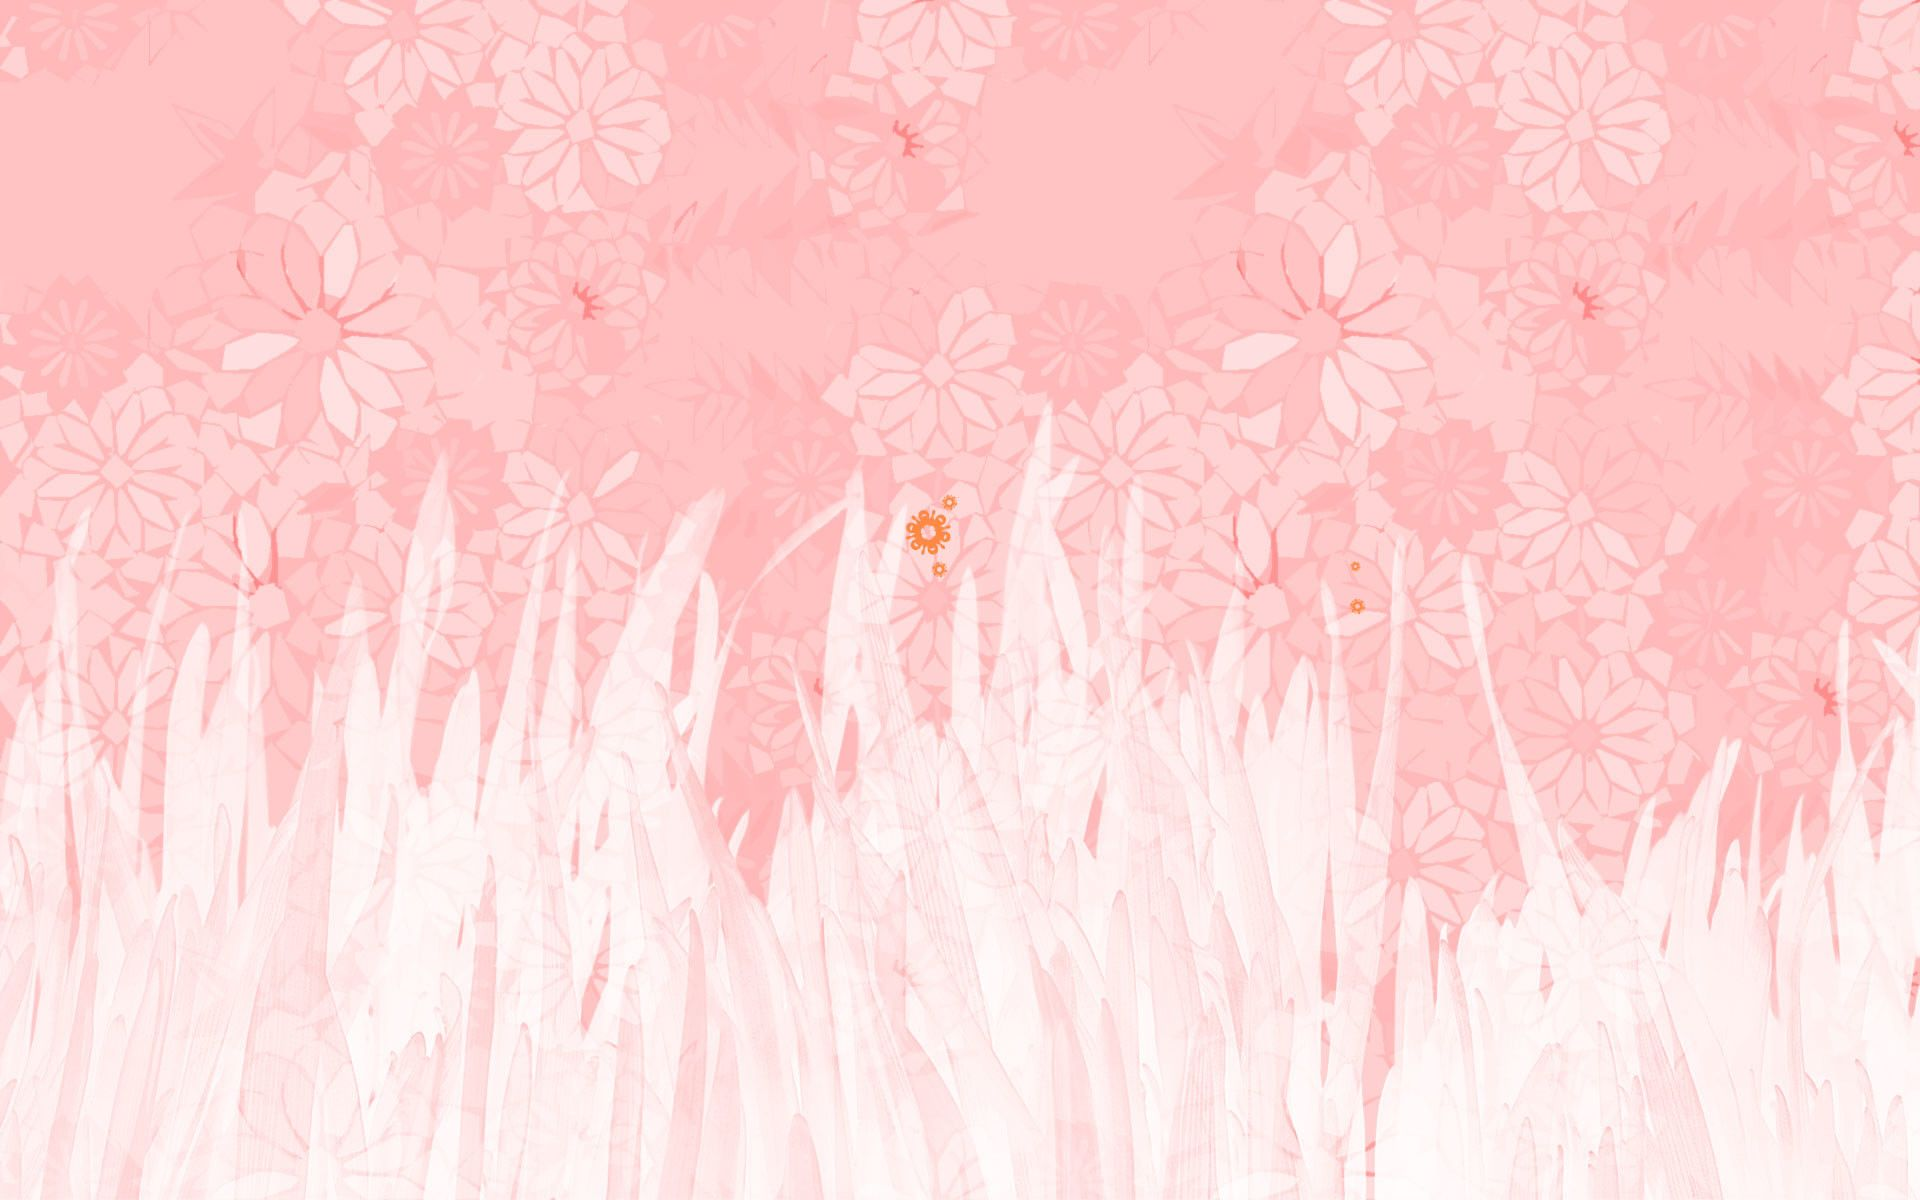 Pastel Pink Aesthetic Desktop Wallpapers On Wallpaperdog